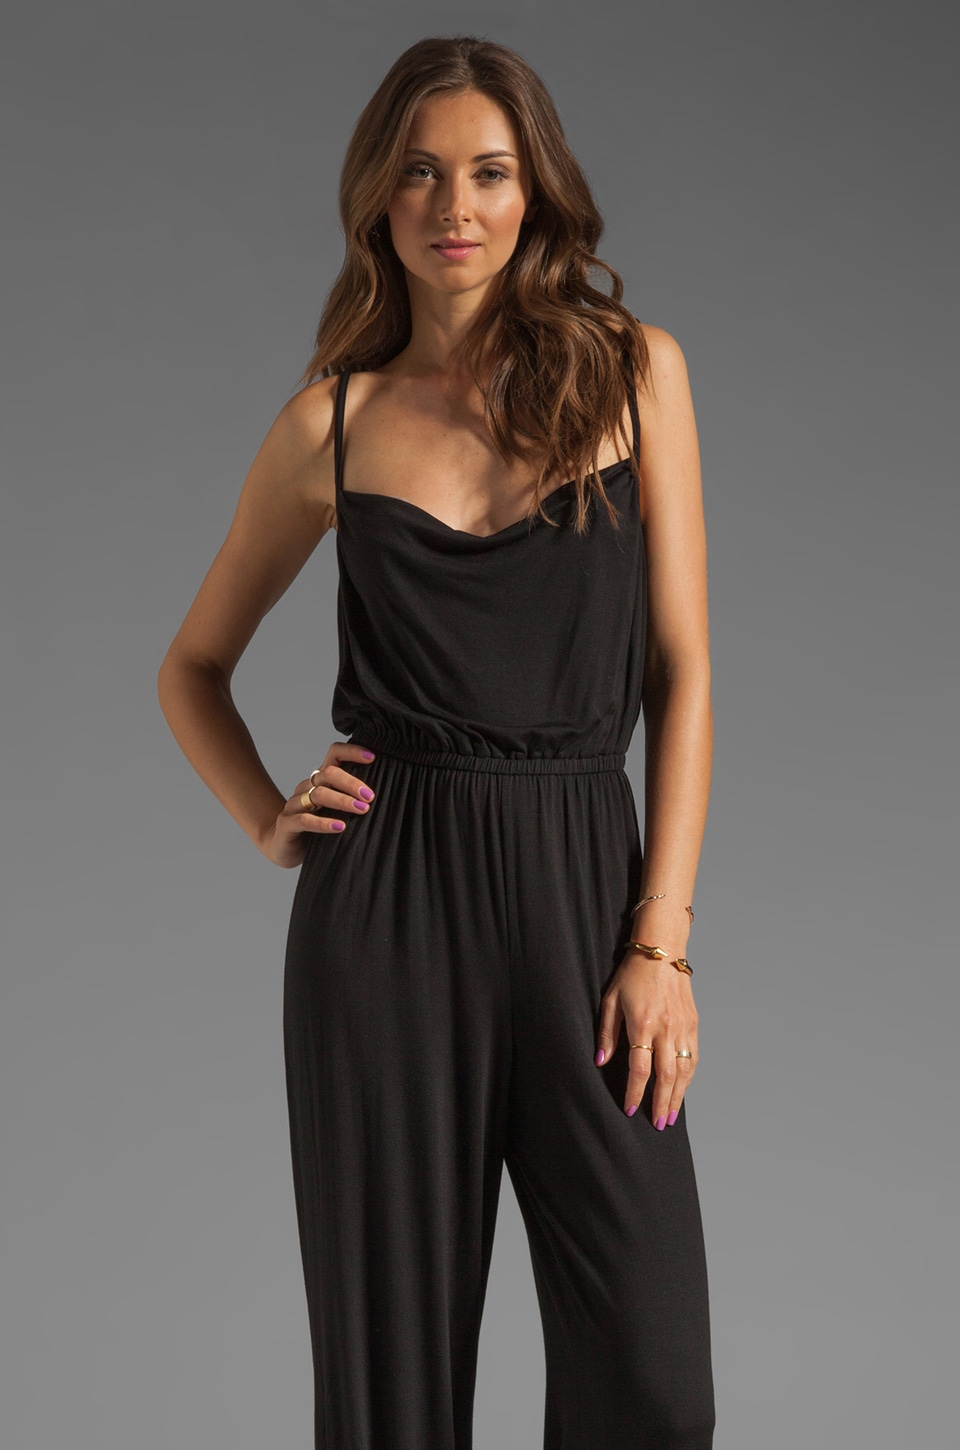 Rachel Pally Telly Jumpsuit in Black